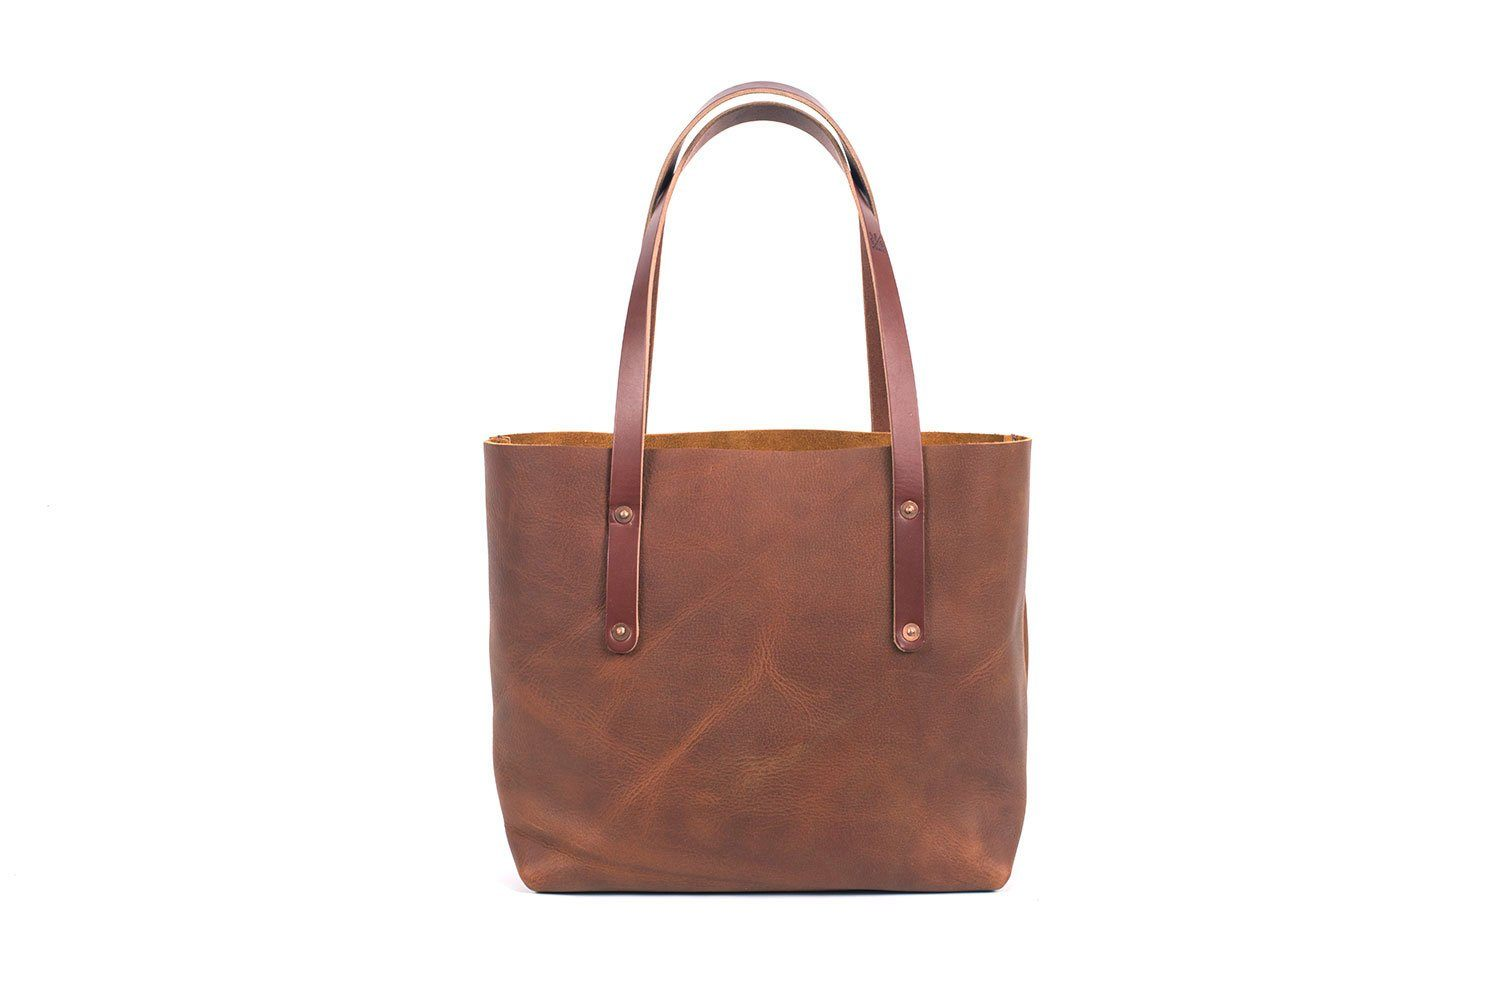 AVERY LEATHER TOTE BAG - MEDIUM